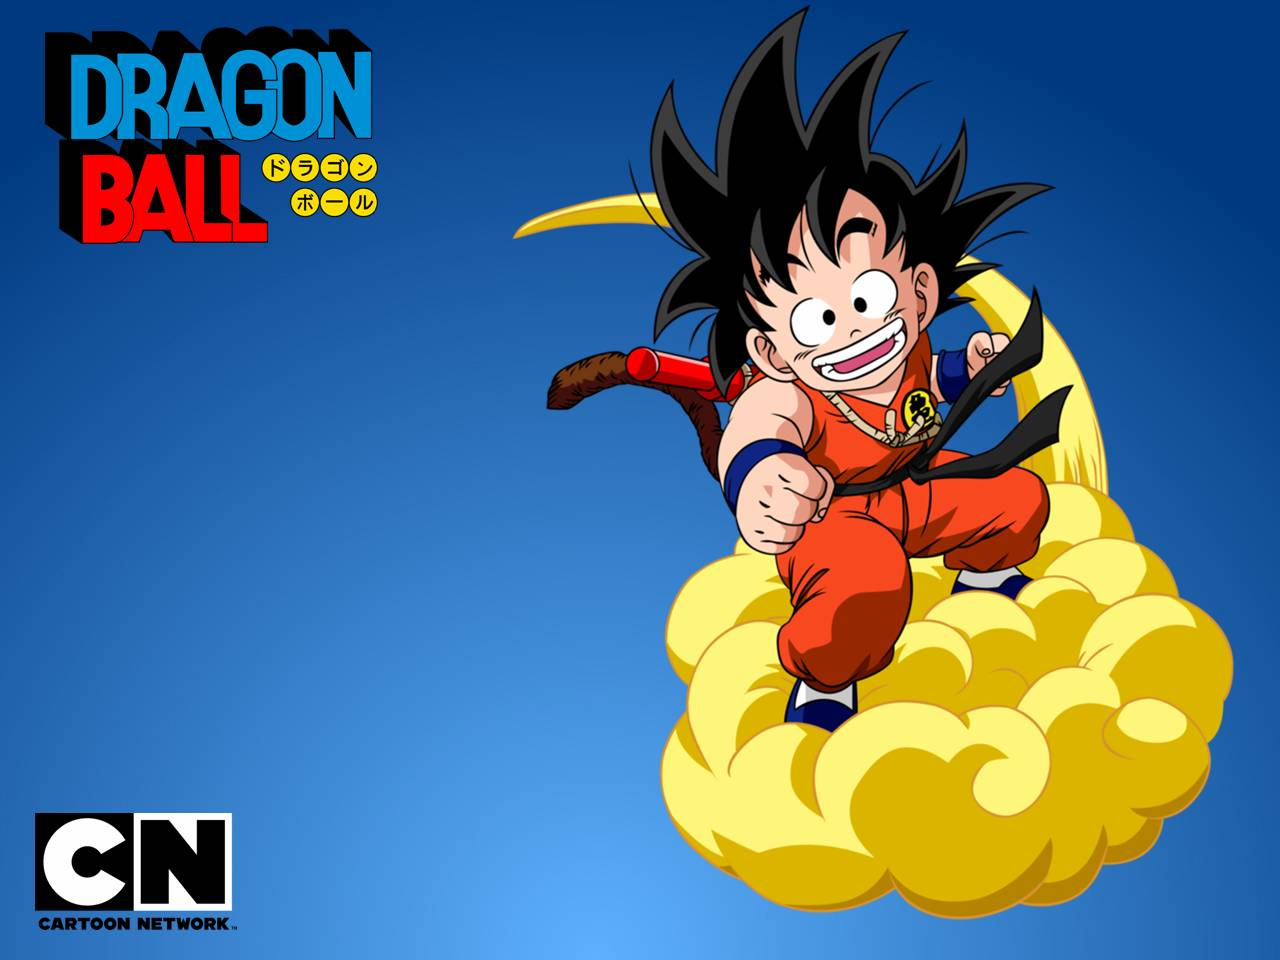 Cartoon Network Dragon Ball z File:dragon Ball Cartoon